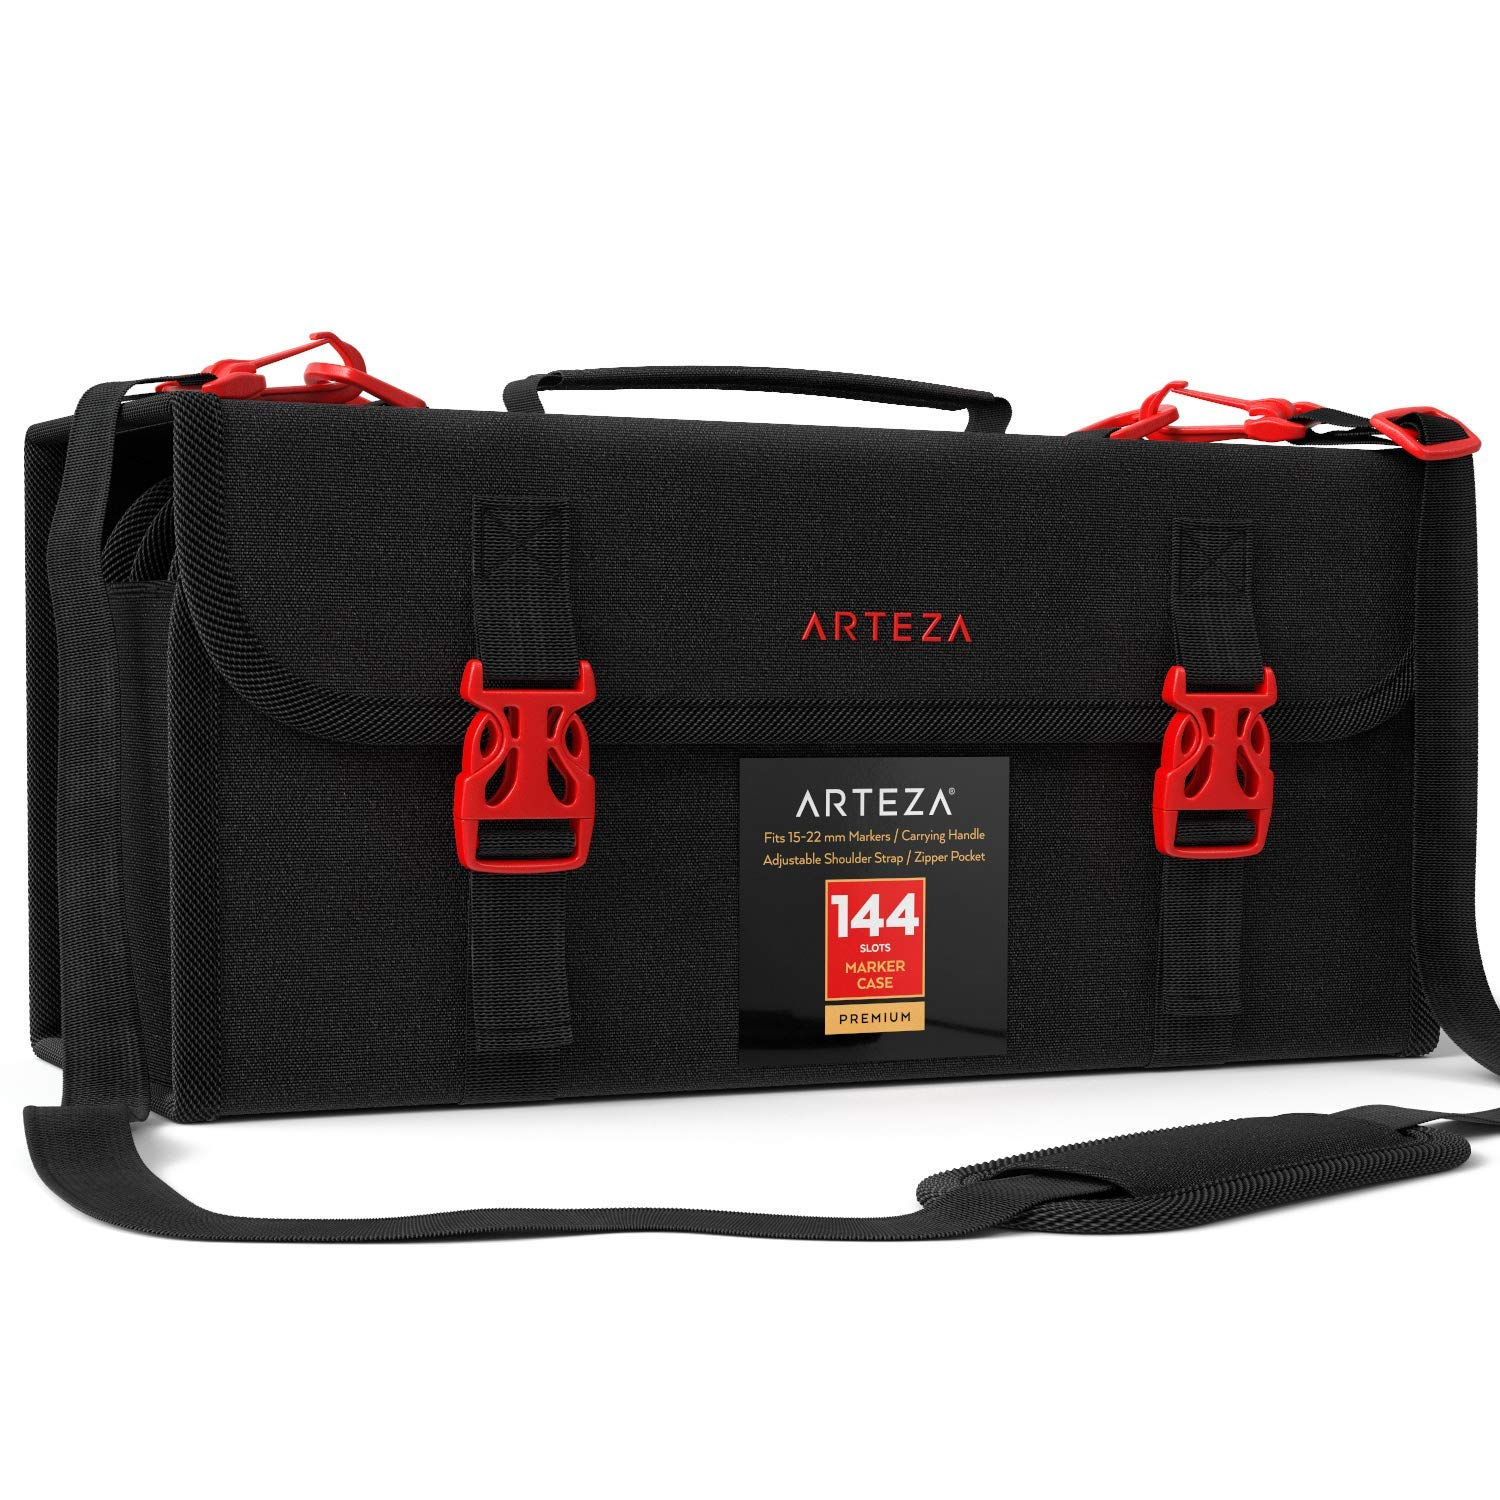 Arteza Art Markers & Pens Organizer (144 Slots), Carrying Case for Travel & Storage with Zipper Pocket, Handle, Removable & Adjustable Strap by ARTEZA